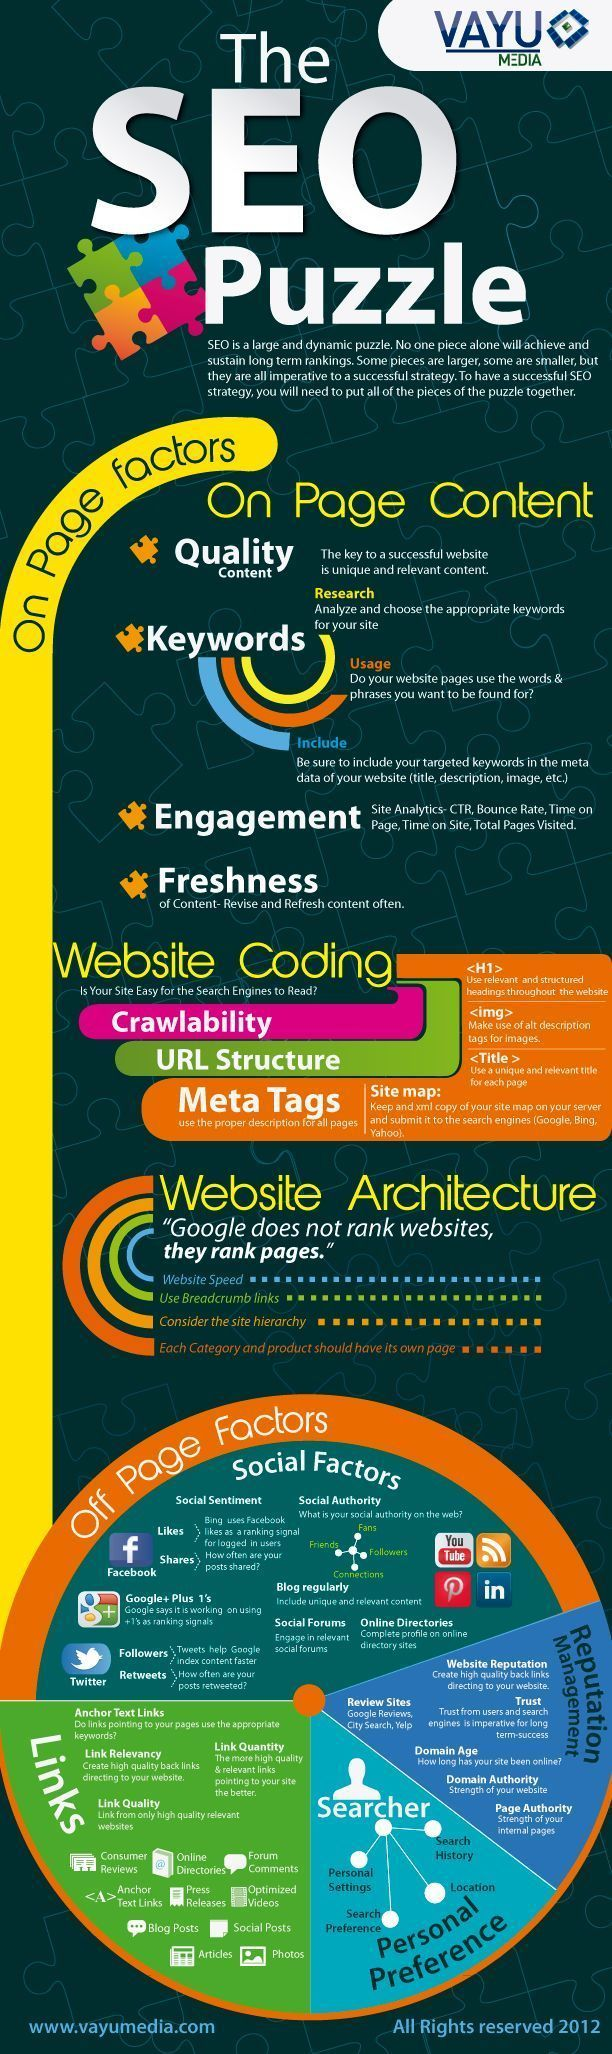 There are of course some key pillars that one should make sure to implement that seemingly every search engine incorporates. Instead of you having to browse around the Internet looking for all of them, Vayu Media put together an infographic called The SEO Puzzle that takes you through them one by one. Or rather, they go through the importance and the way that Google indexes websites for example. #searchengineoptimizationexamples,